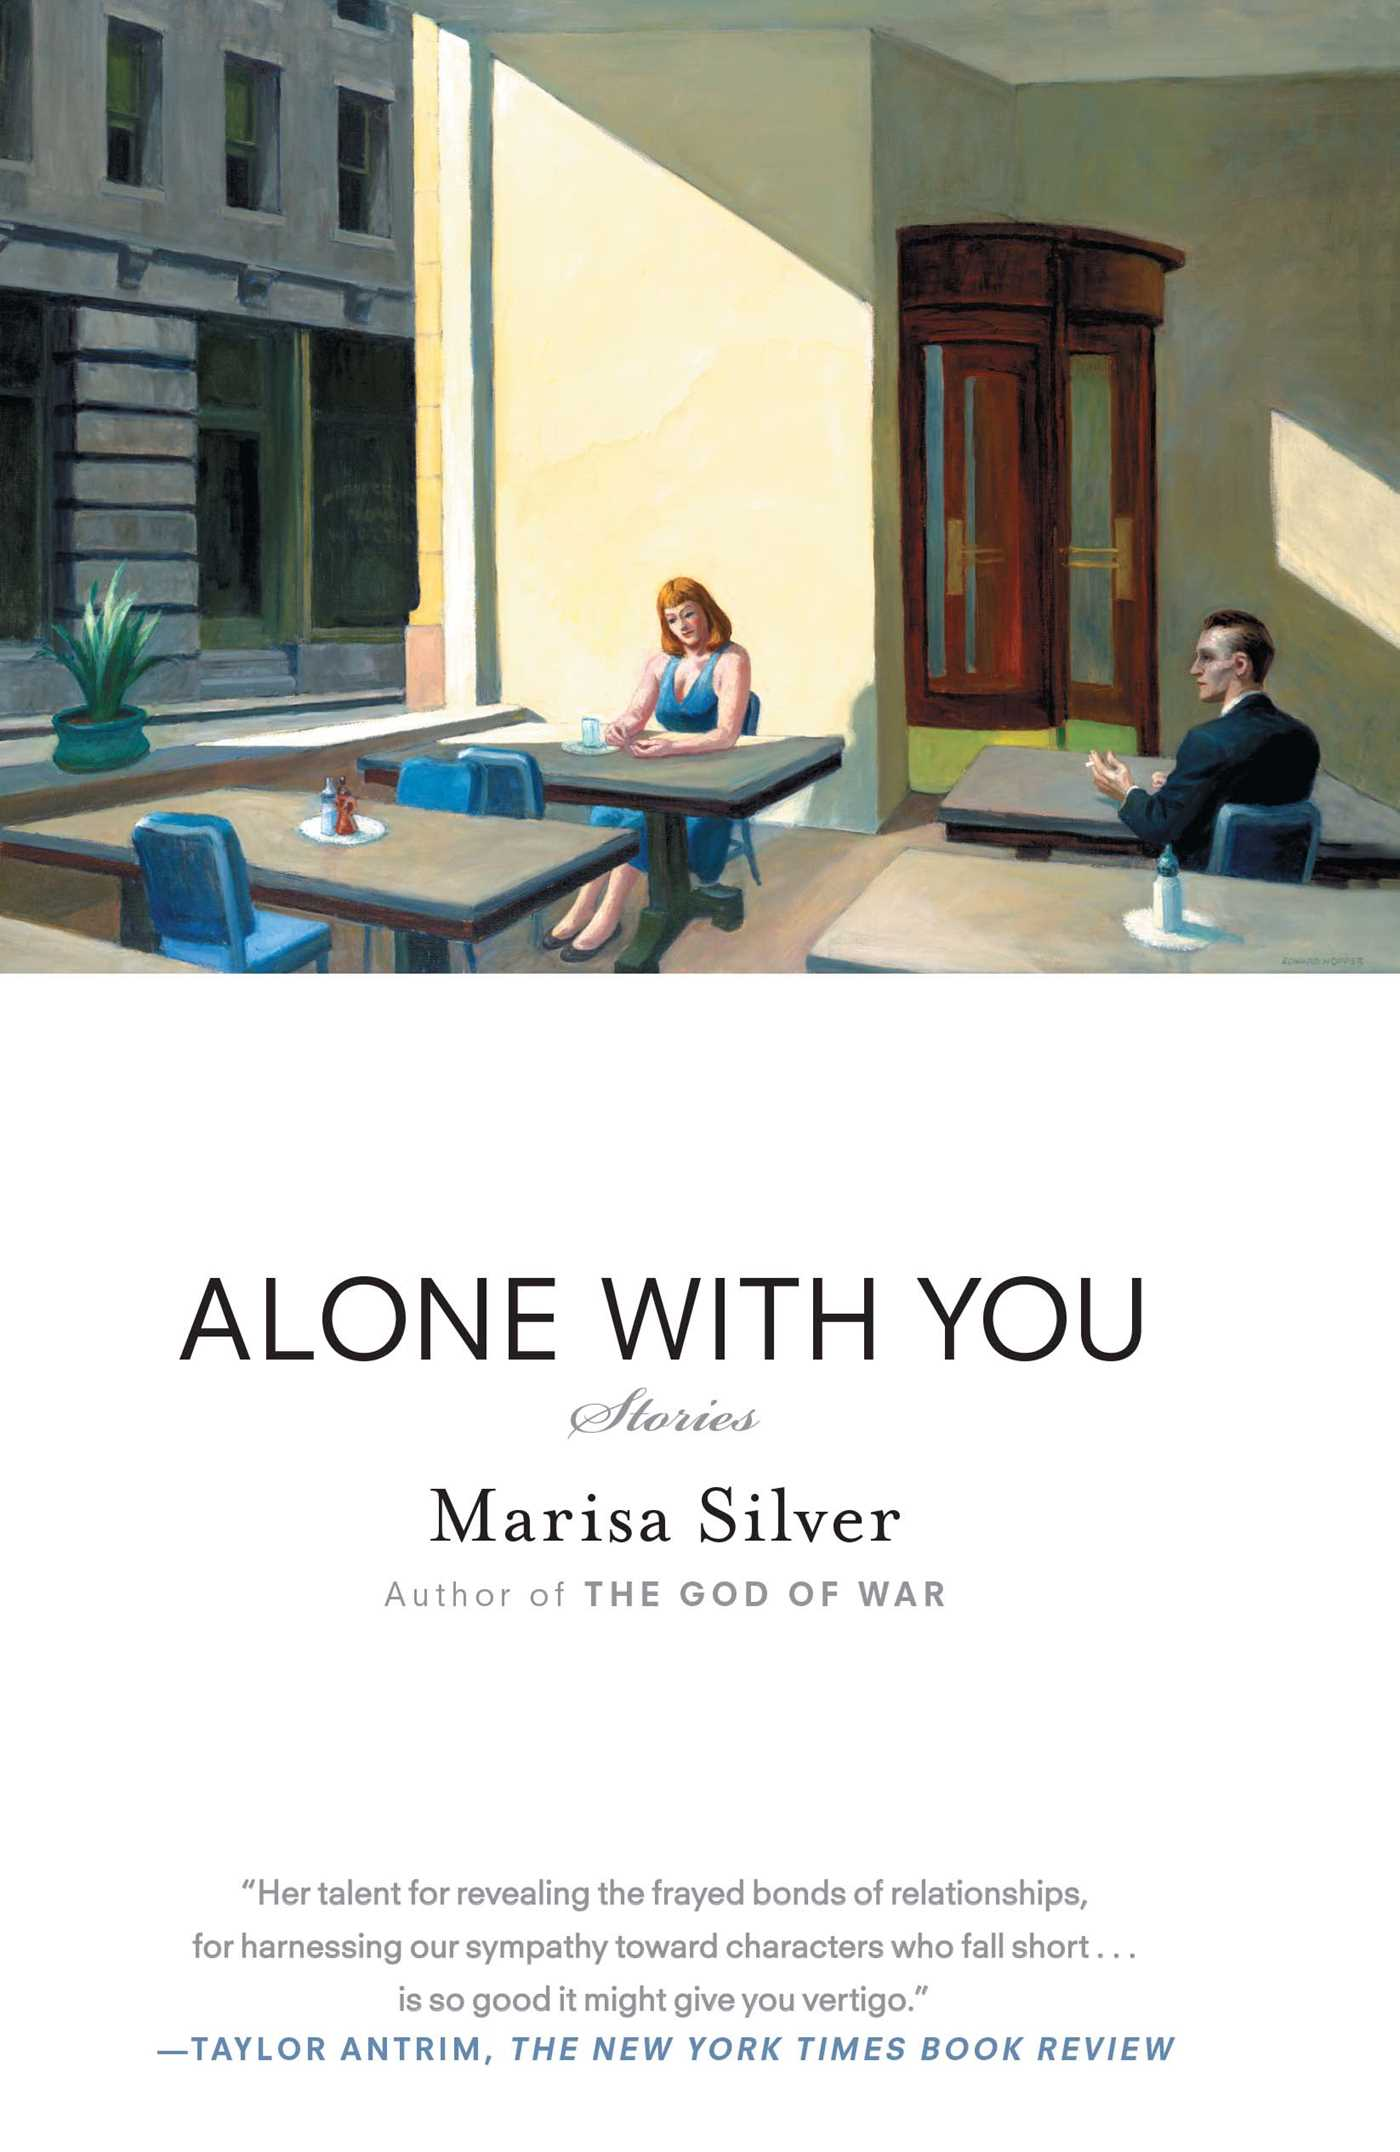 Alone with you 9781416593867 hr